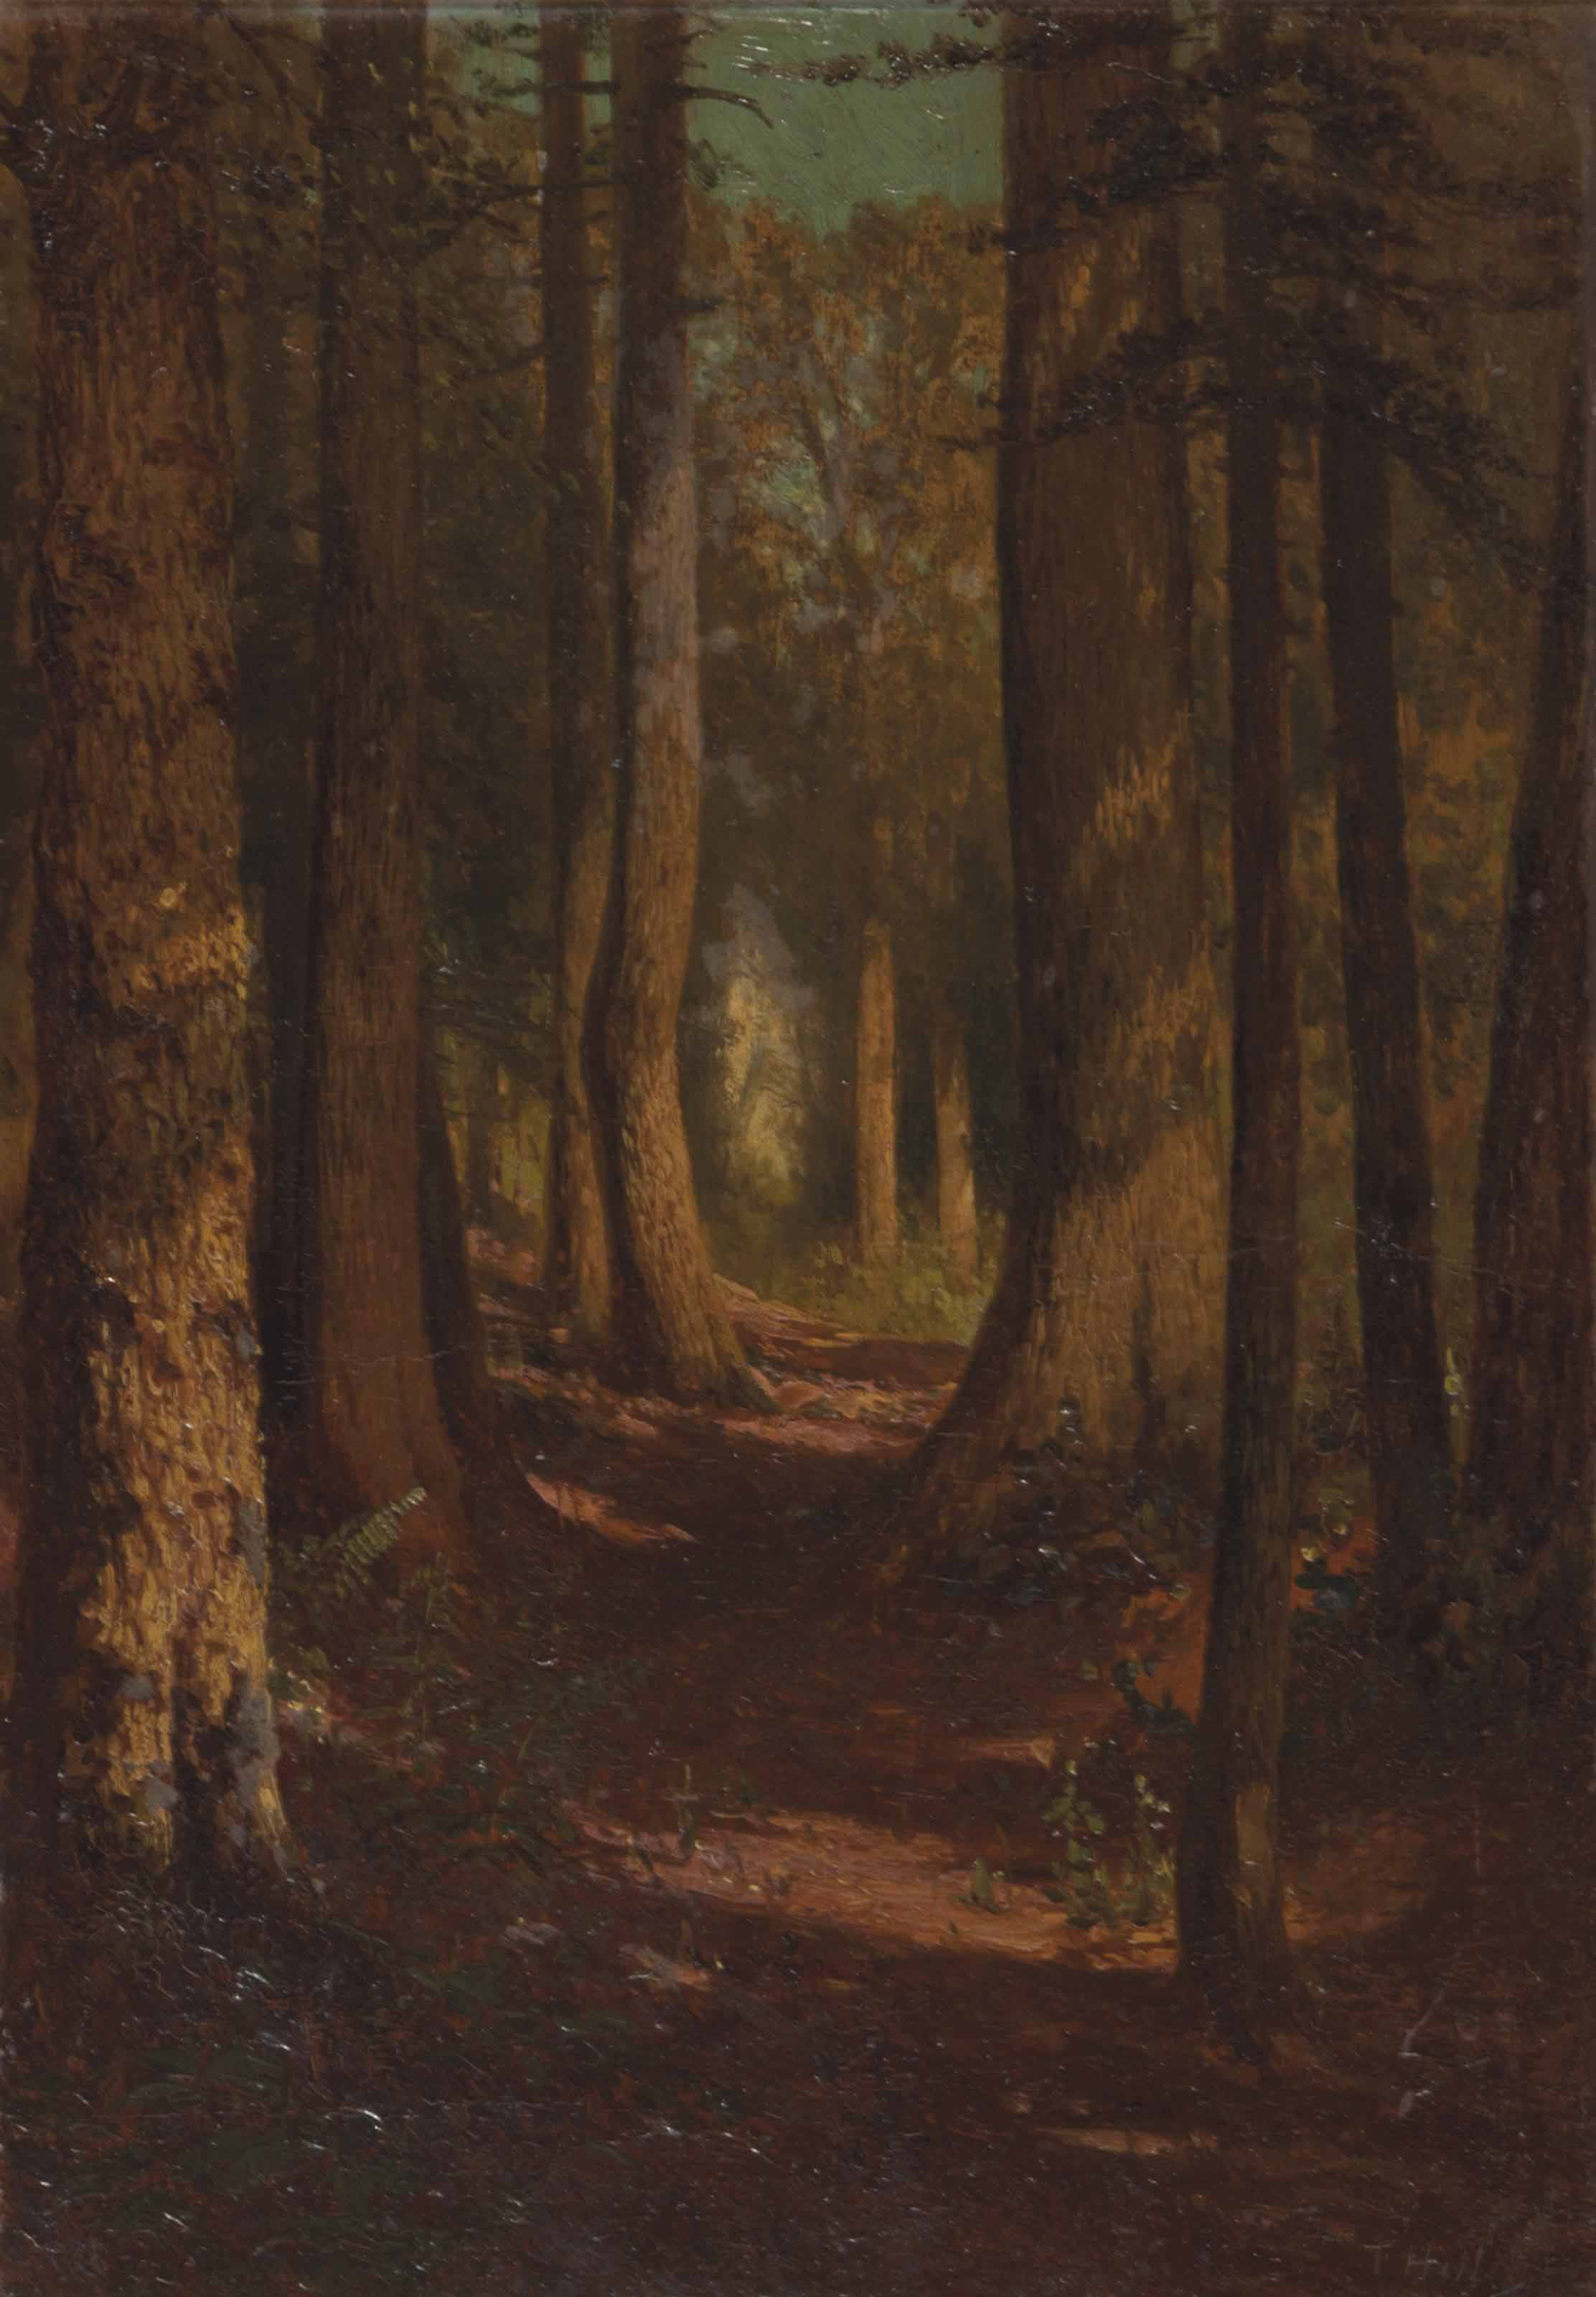 A tree lined path through the woods